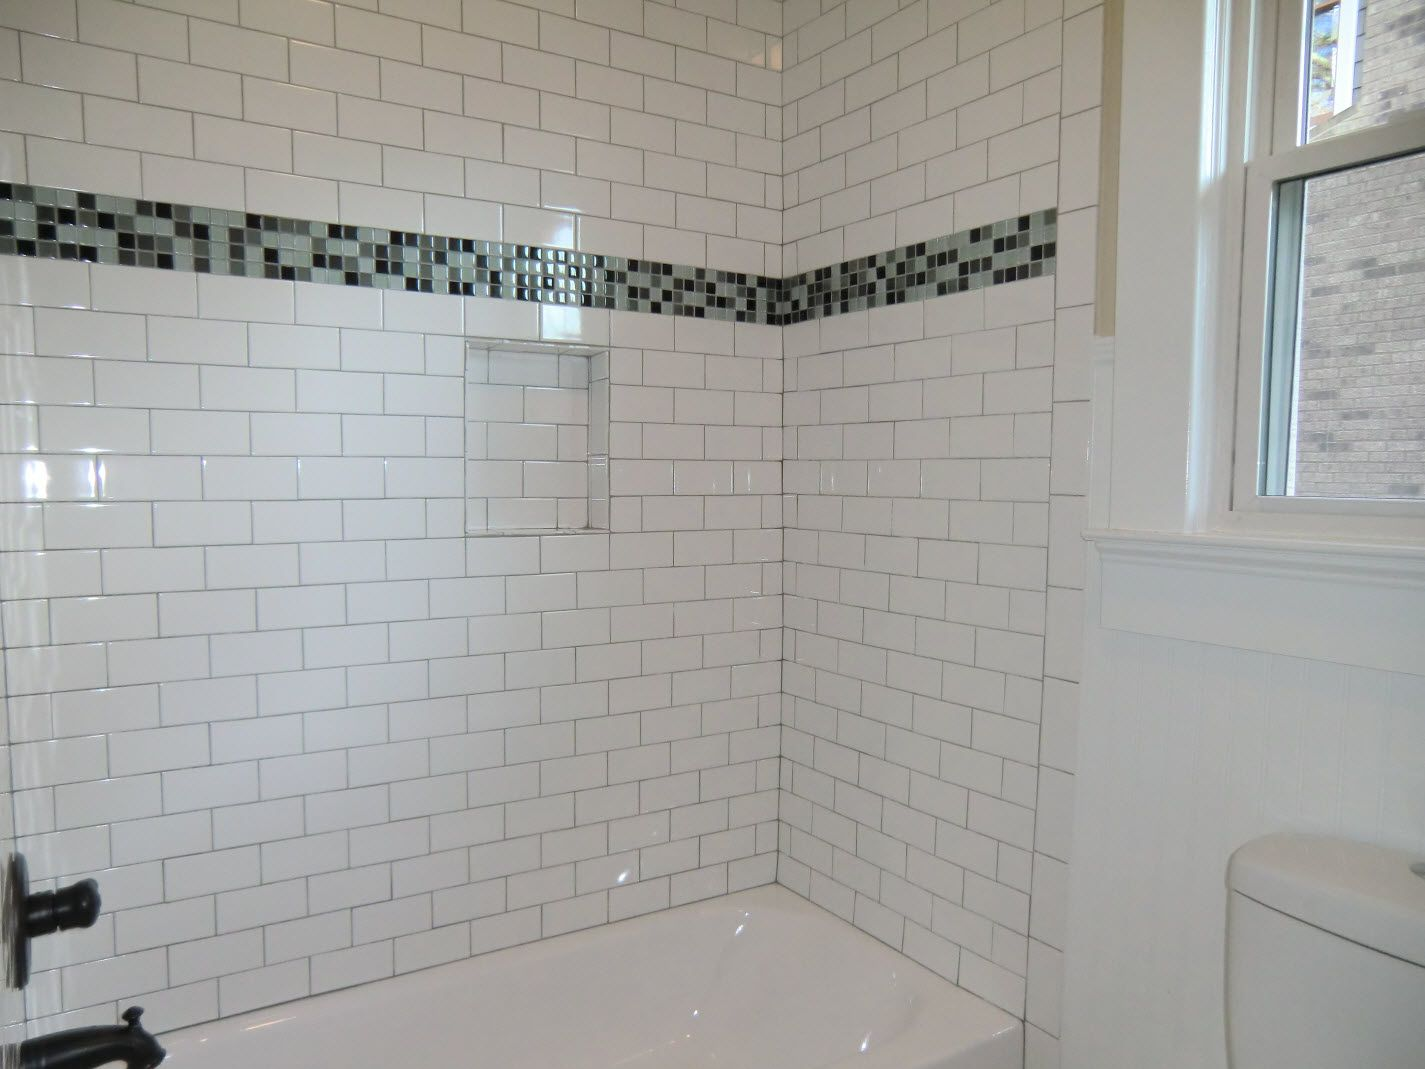 Subway Tile Bathroom | Guest Bath tub with subway tile surround ...